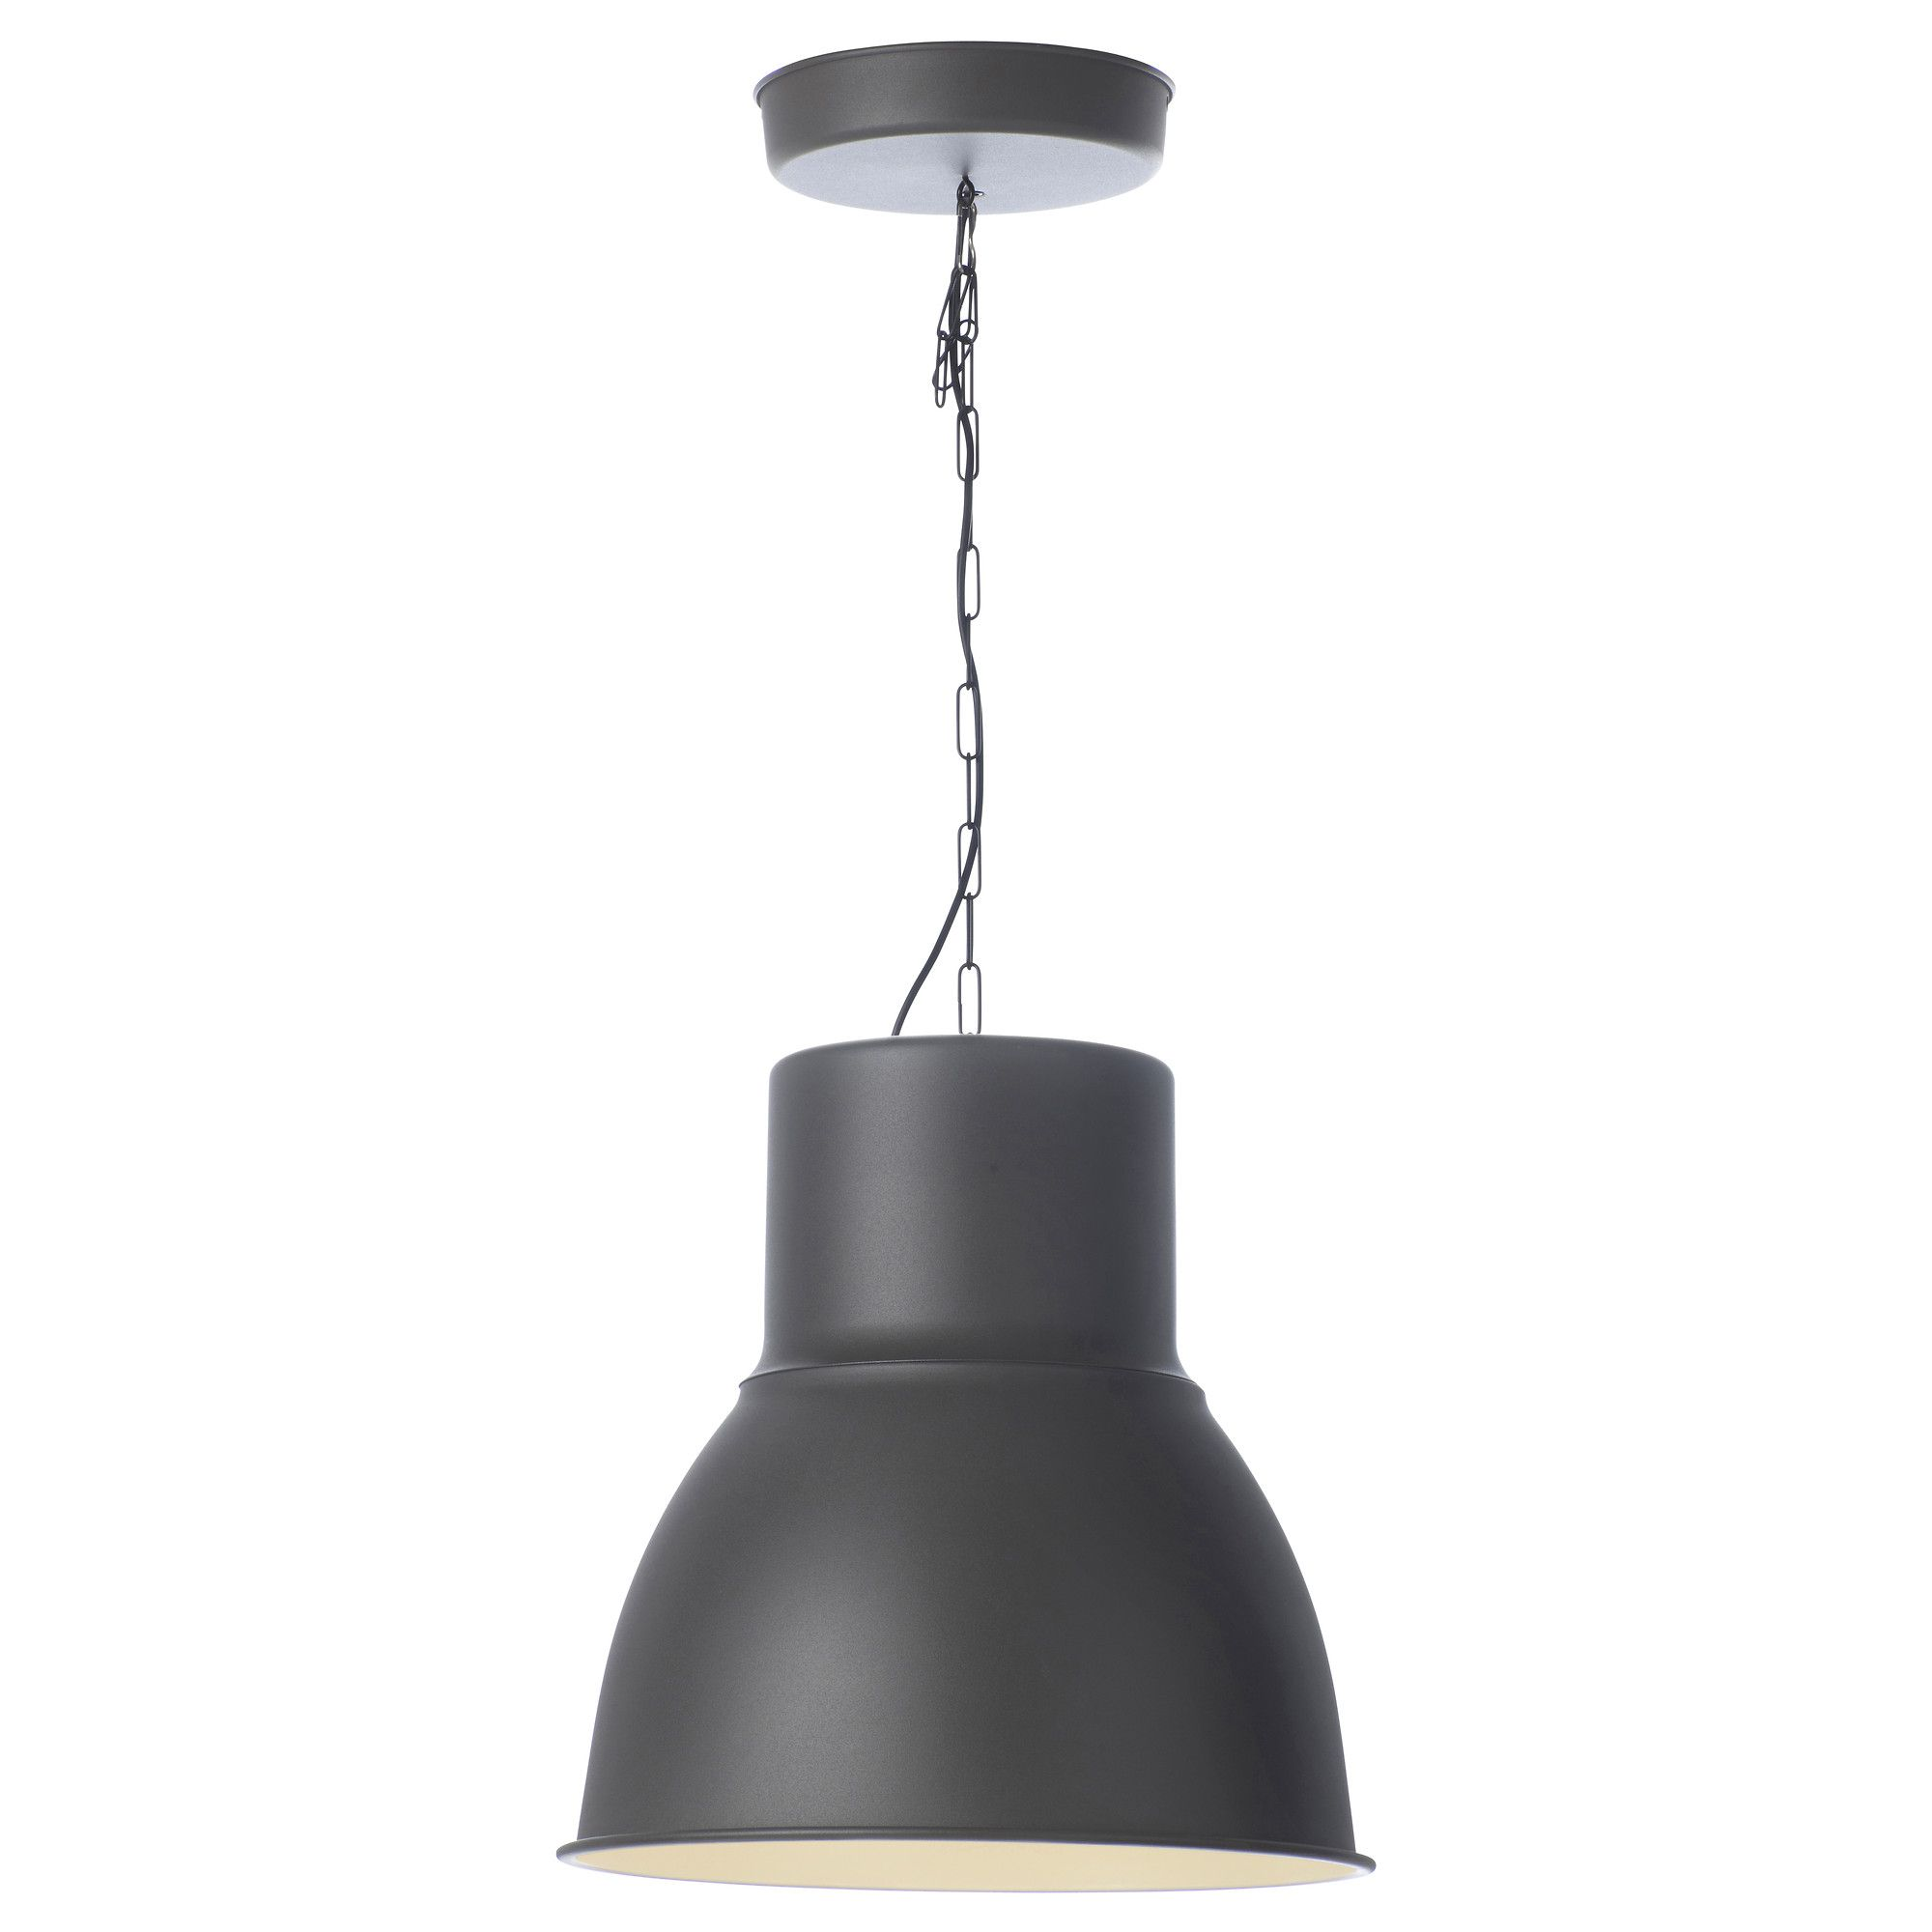 ikea lighting pendant. HEKTAR Pendant Lamp - IKEA Product Dimensions Diameter: 19 \ Ikea Lighting L